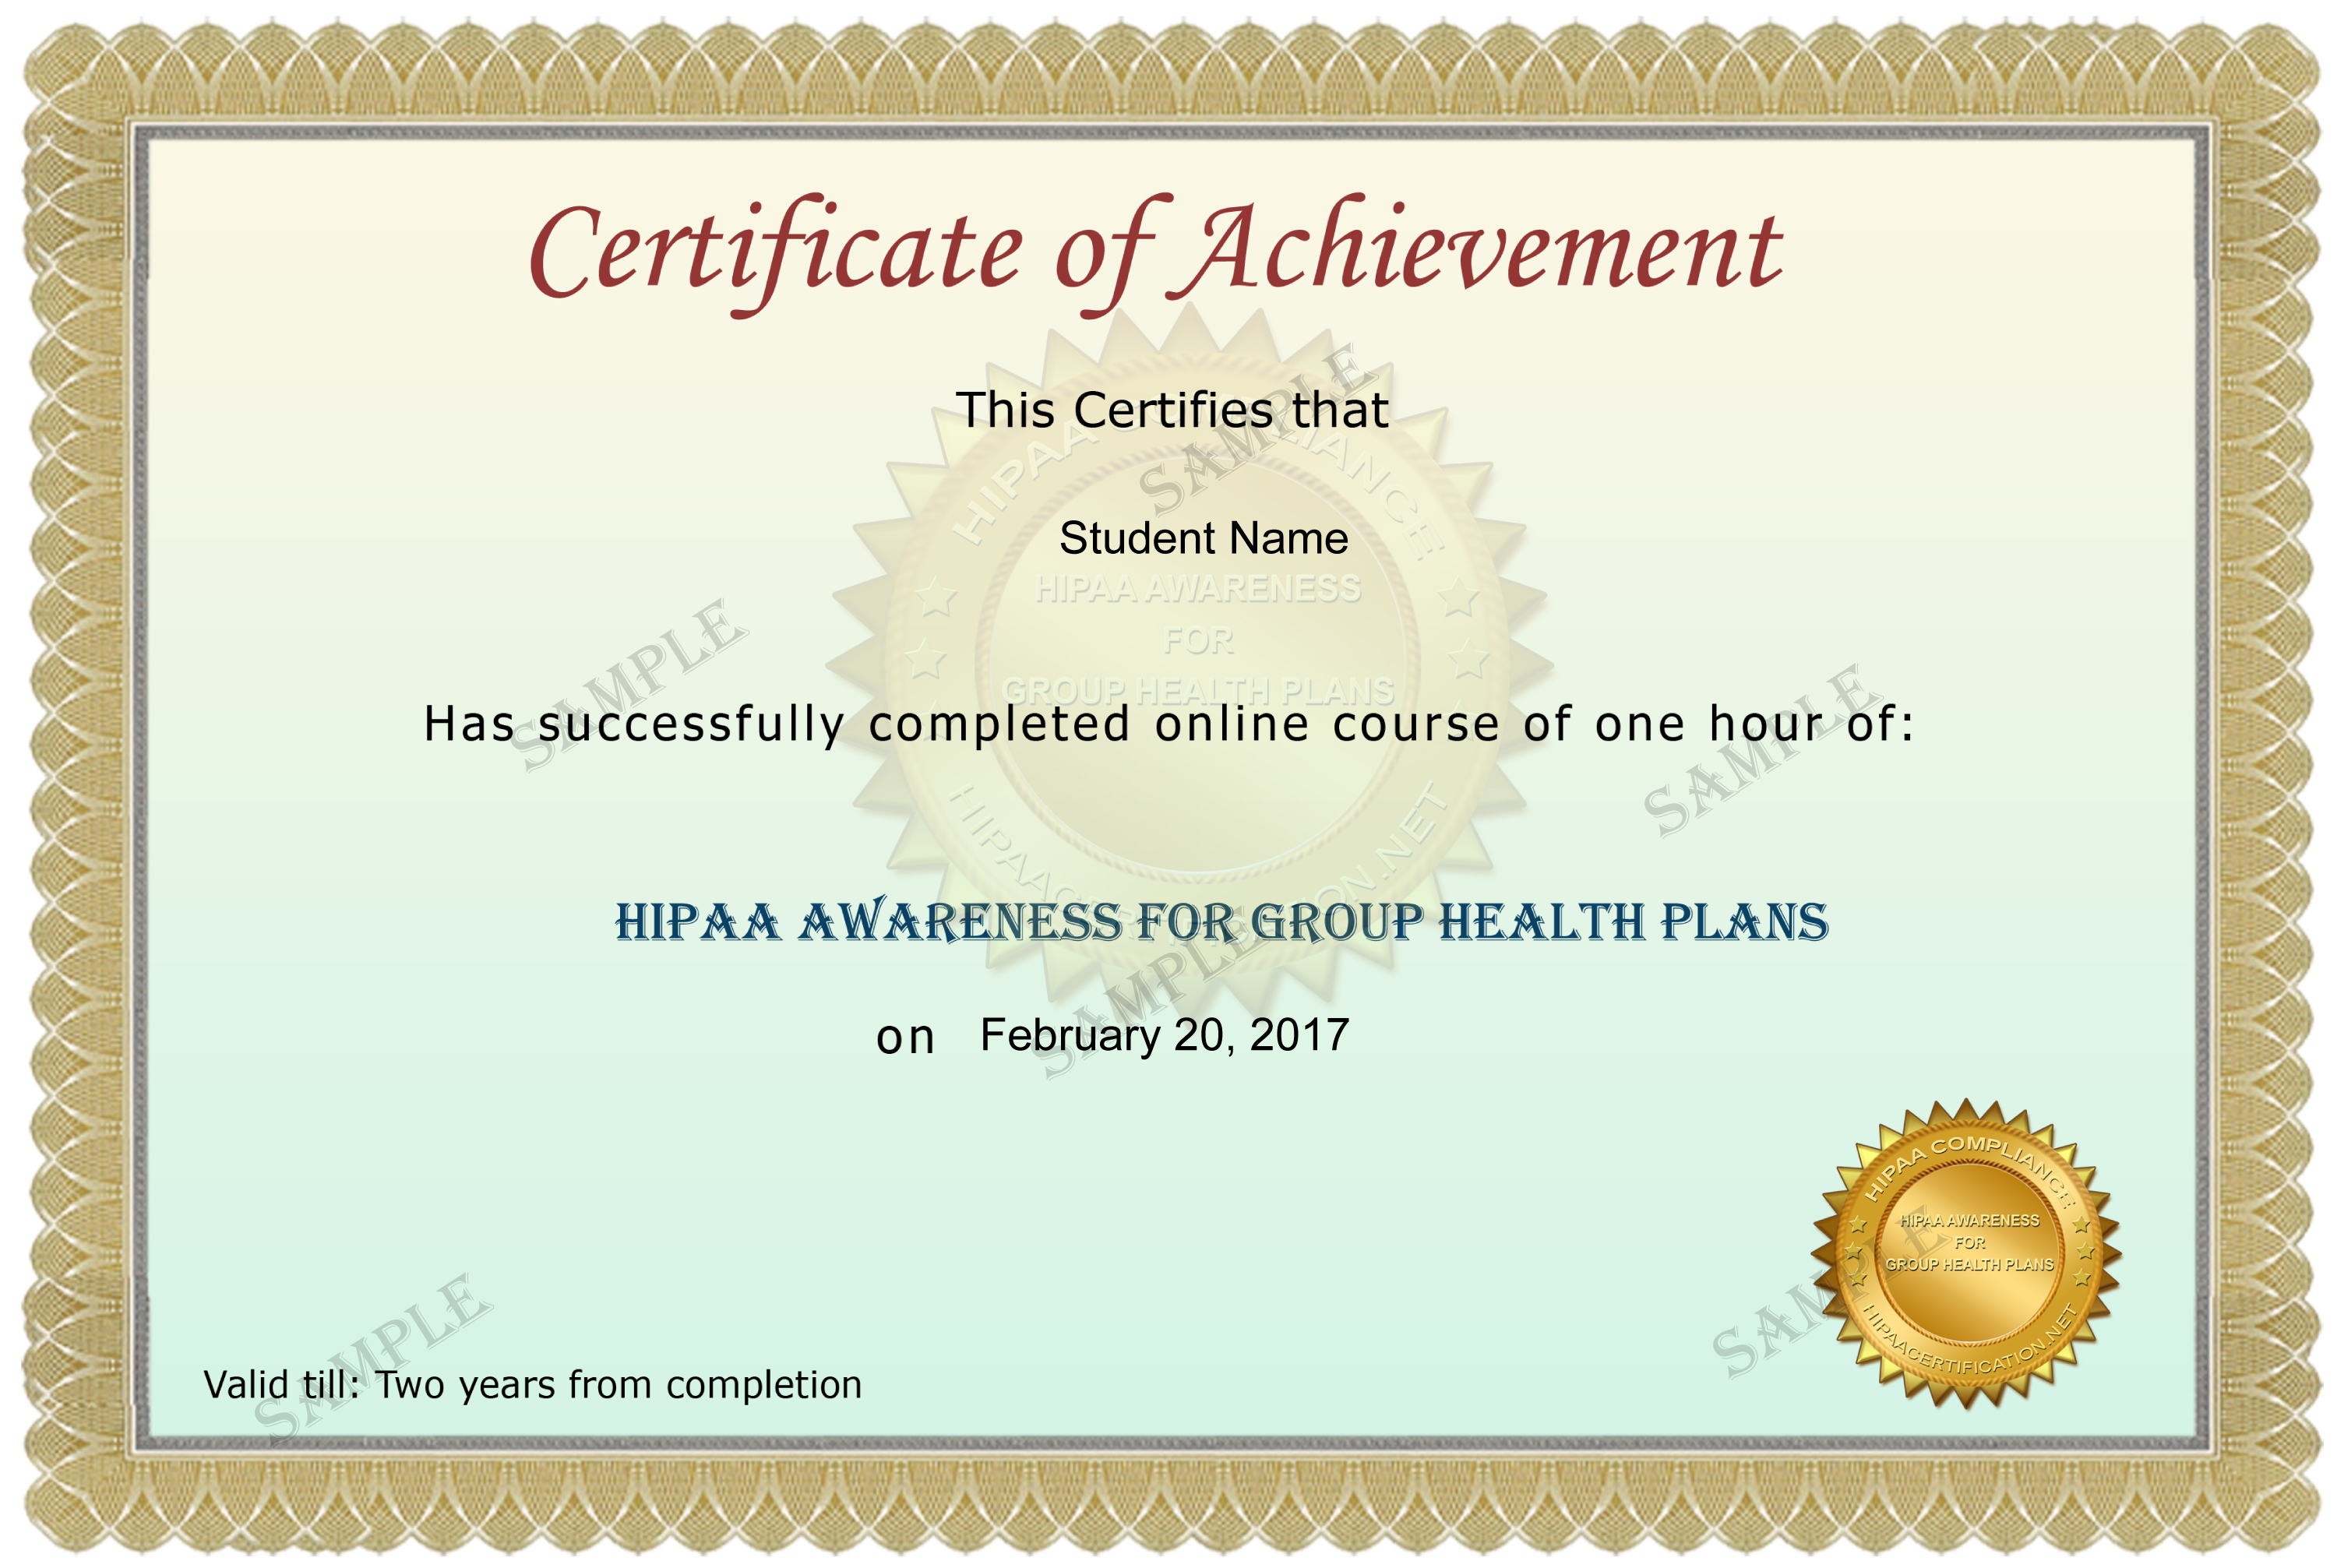 Hipaa awareness for group health plans group health plans sample certificate xflitez Gallery